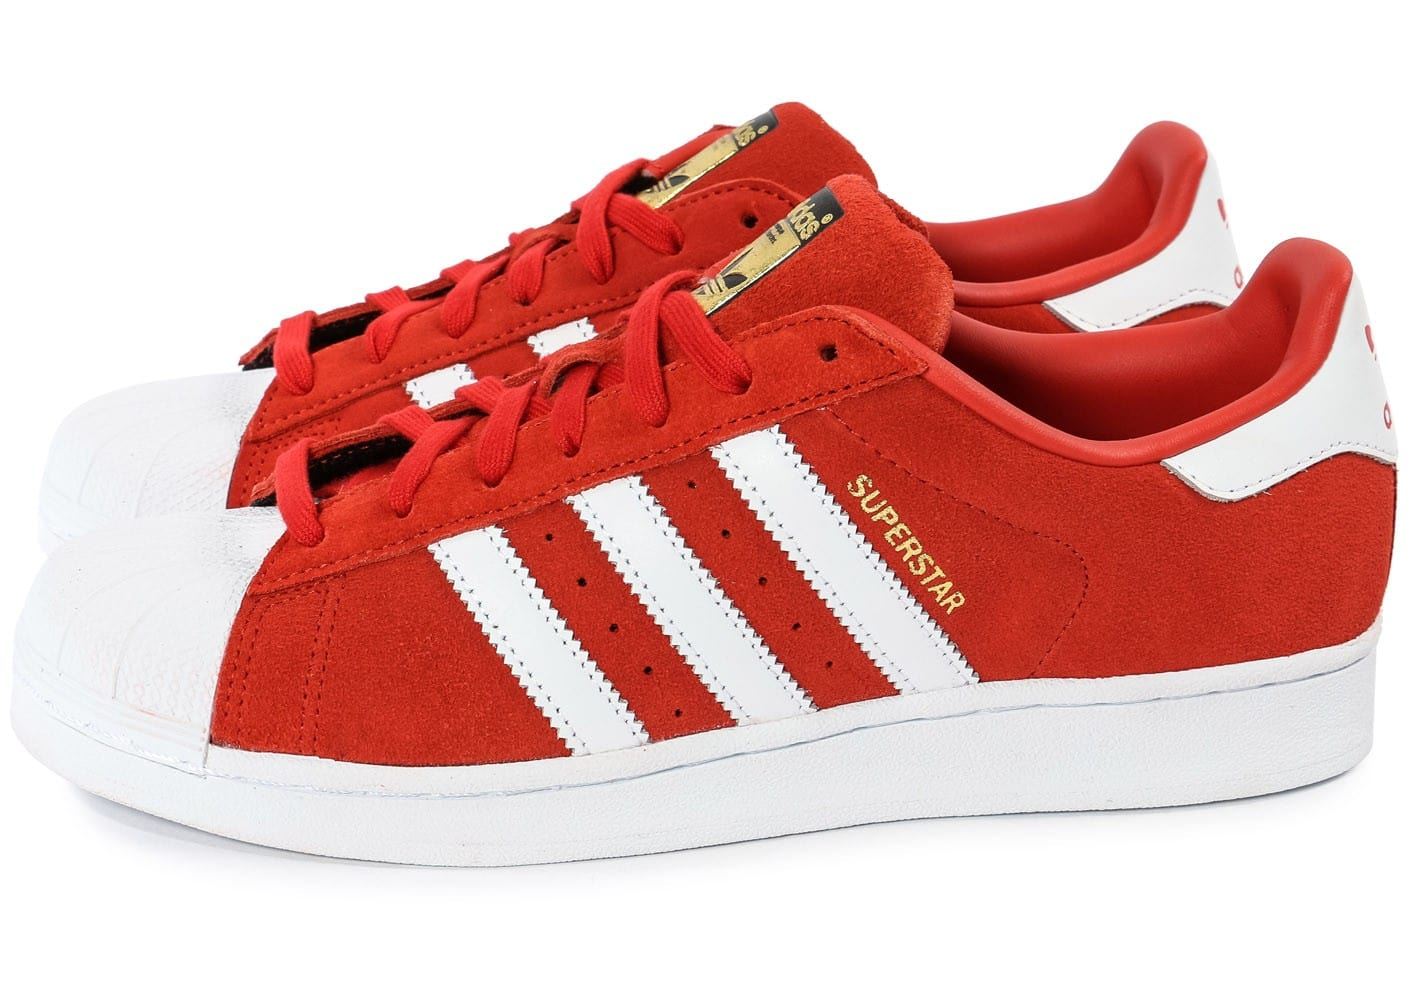 adidas superstar suede rouge et blanche chaussures homme chausport. Black Bedroom Furniture Sets. Home Design Ideas